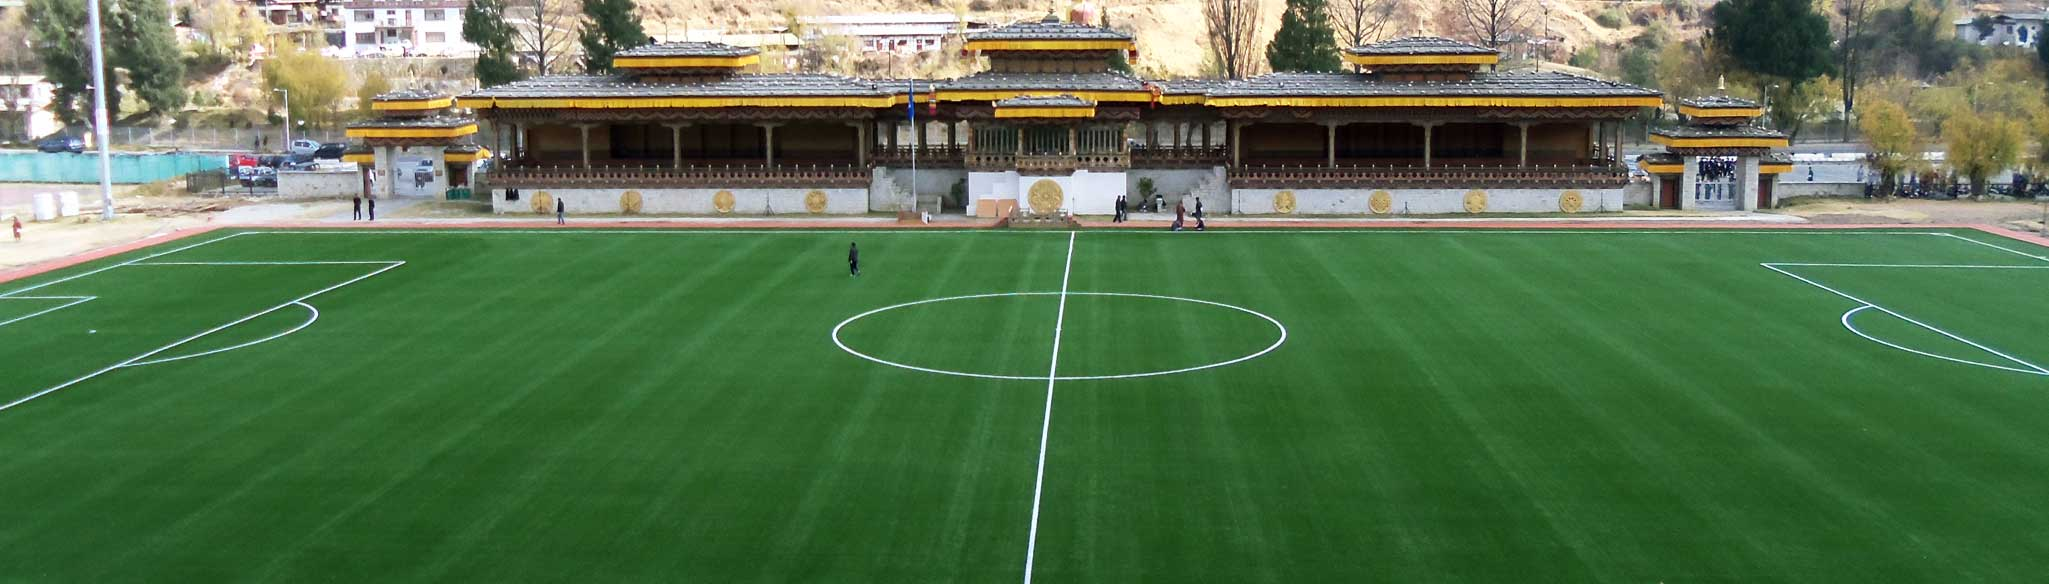 Bhutan Football Grounds Acosa Sports Infrastructure Services